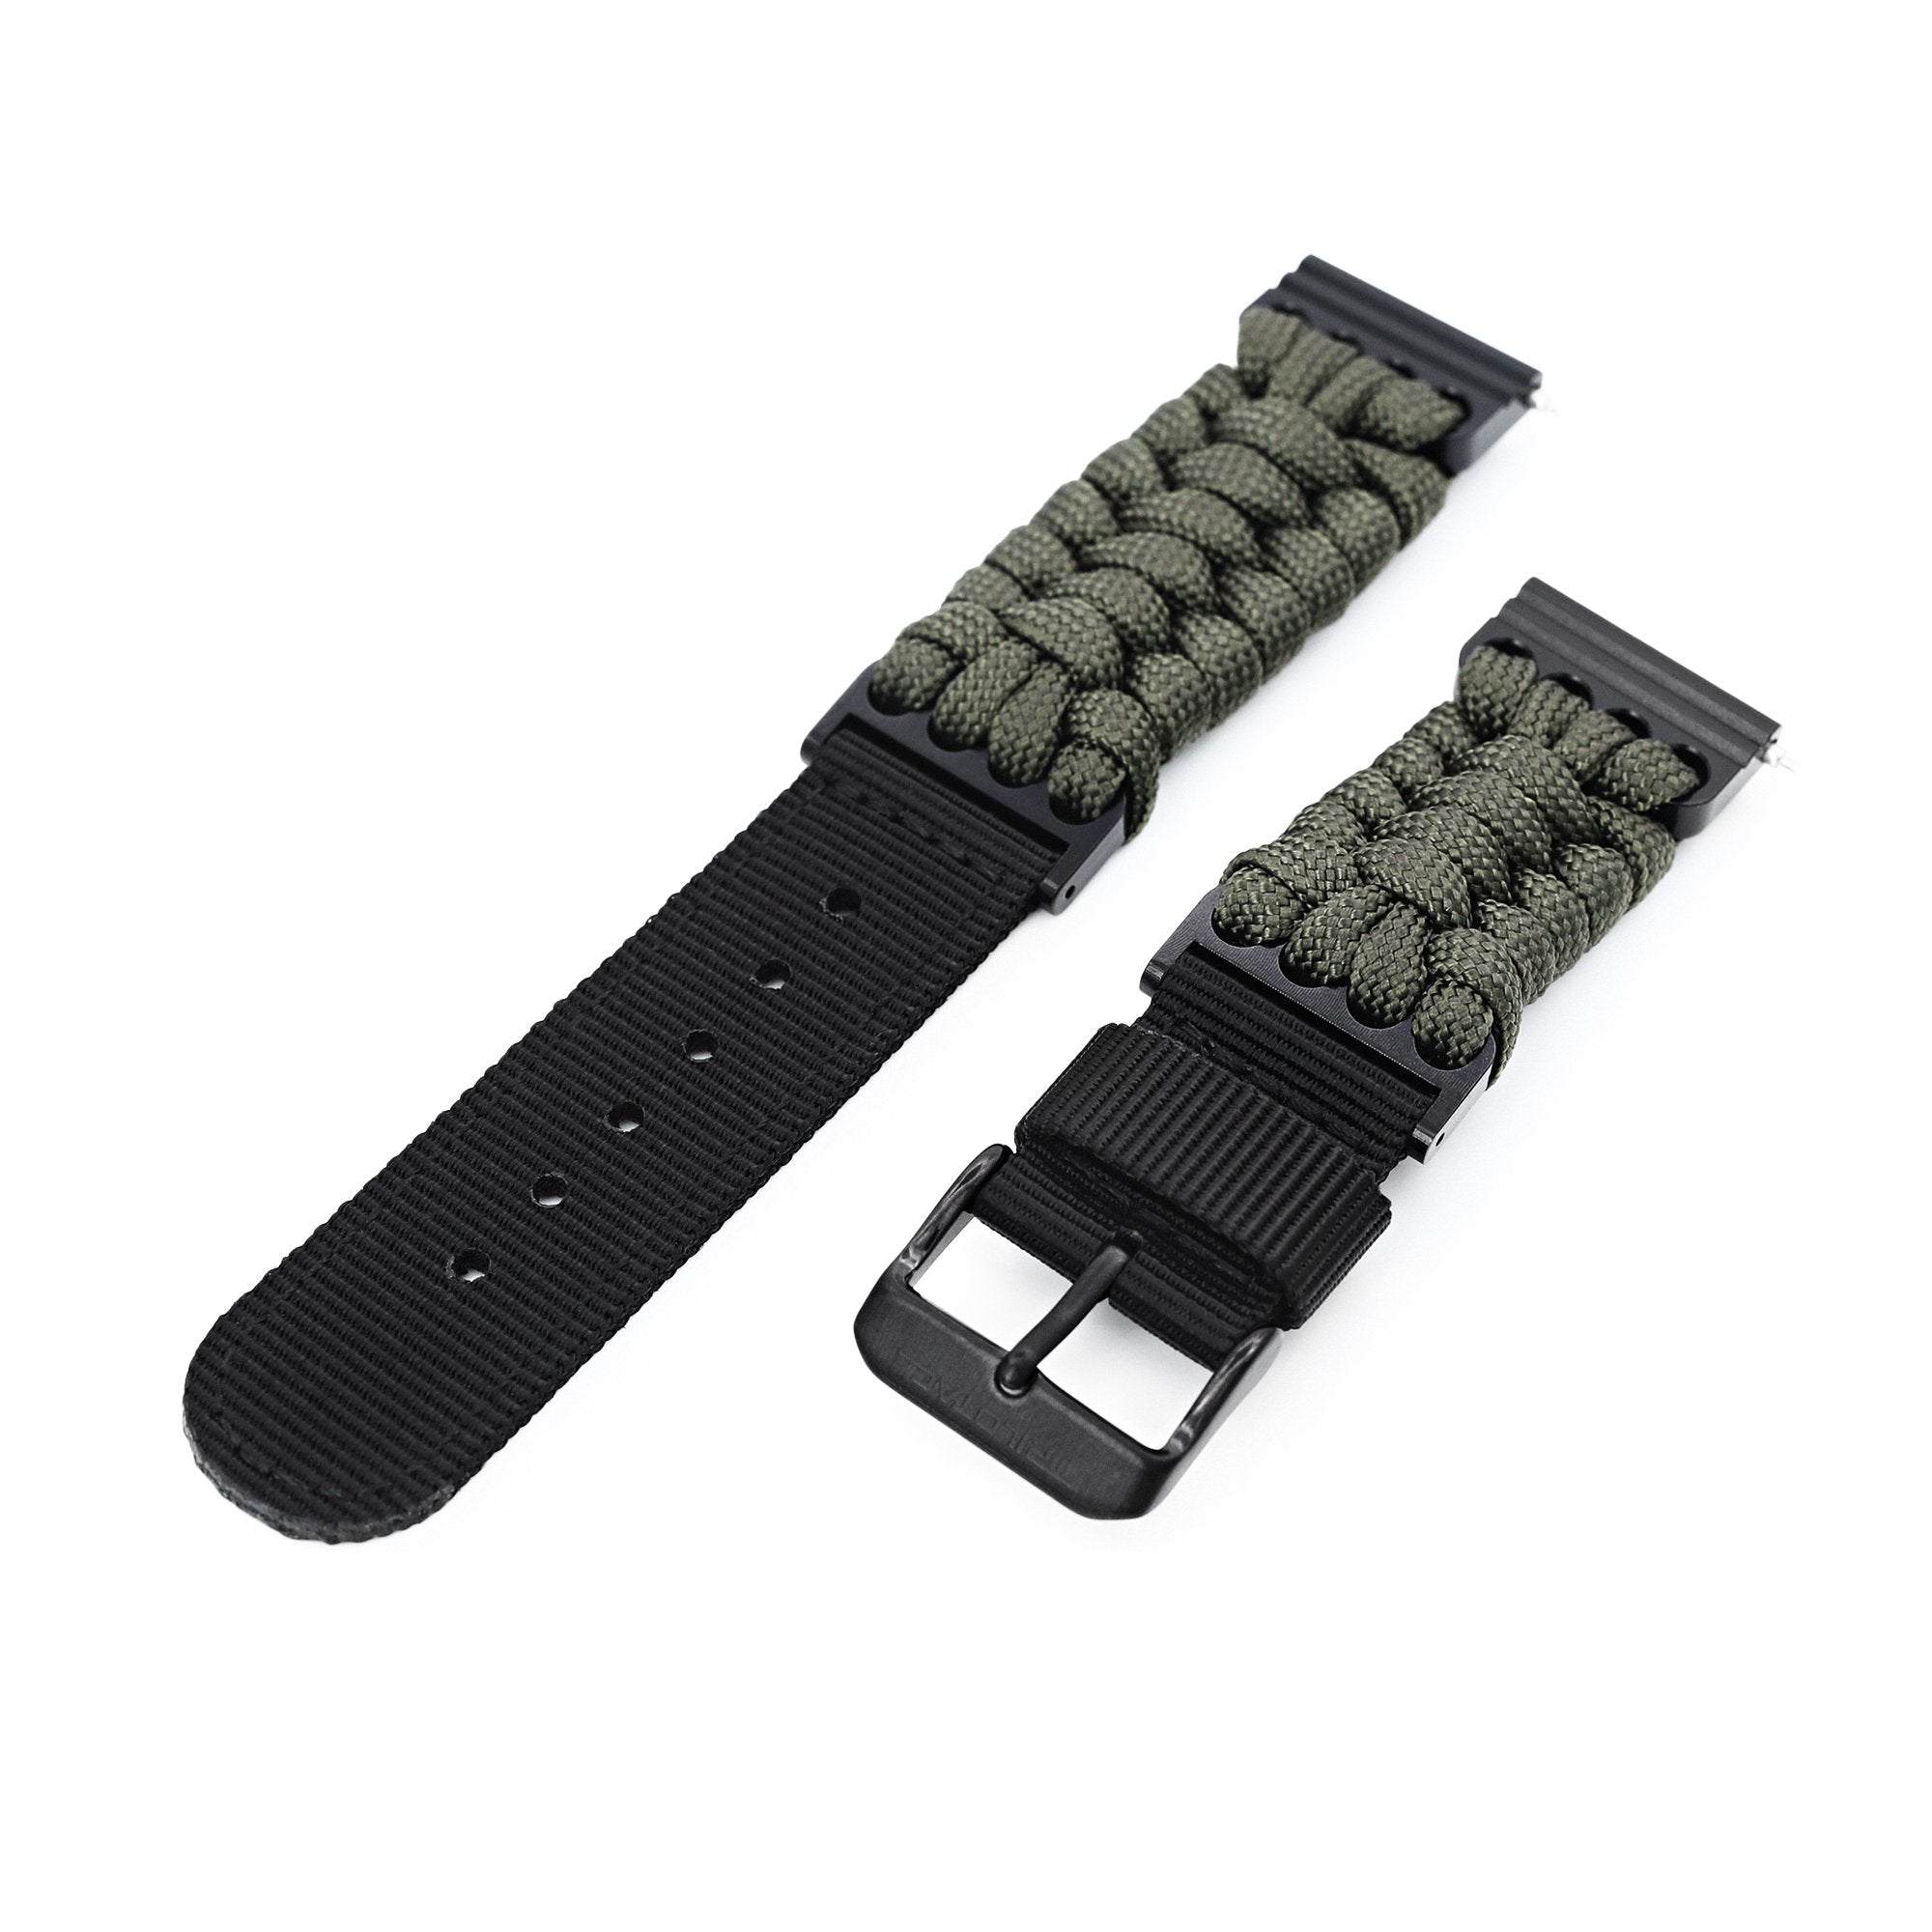 Quick Release 22mm G10 Hybrid Paracord watch Band, Military Green Strapcode Watch Bands